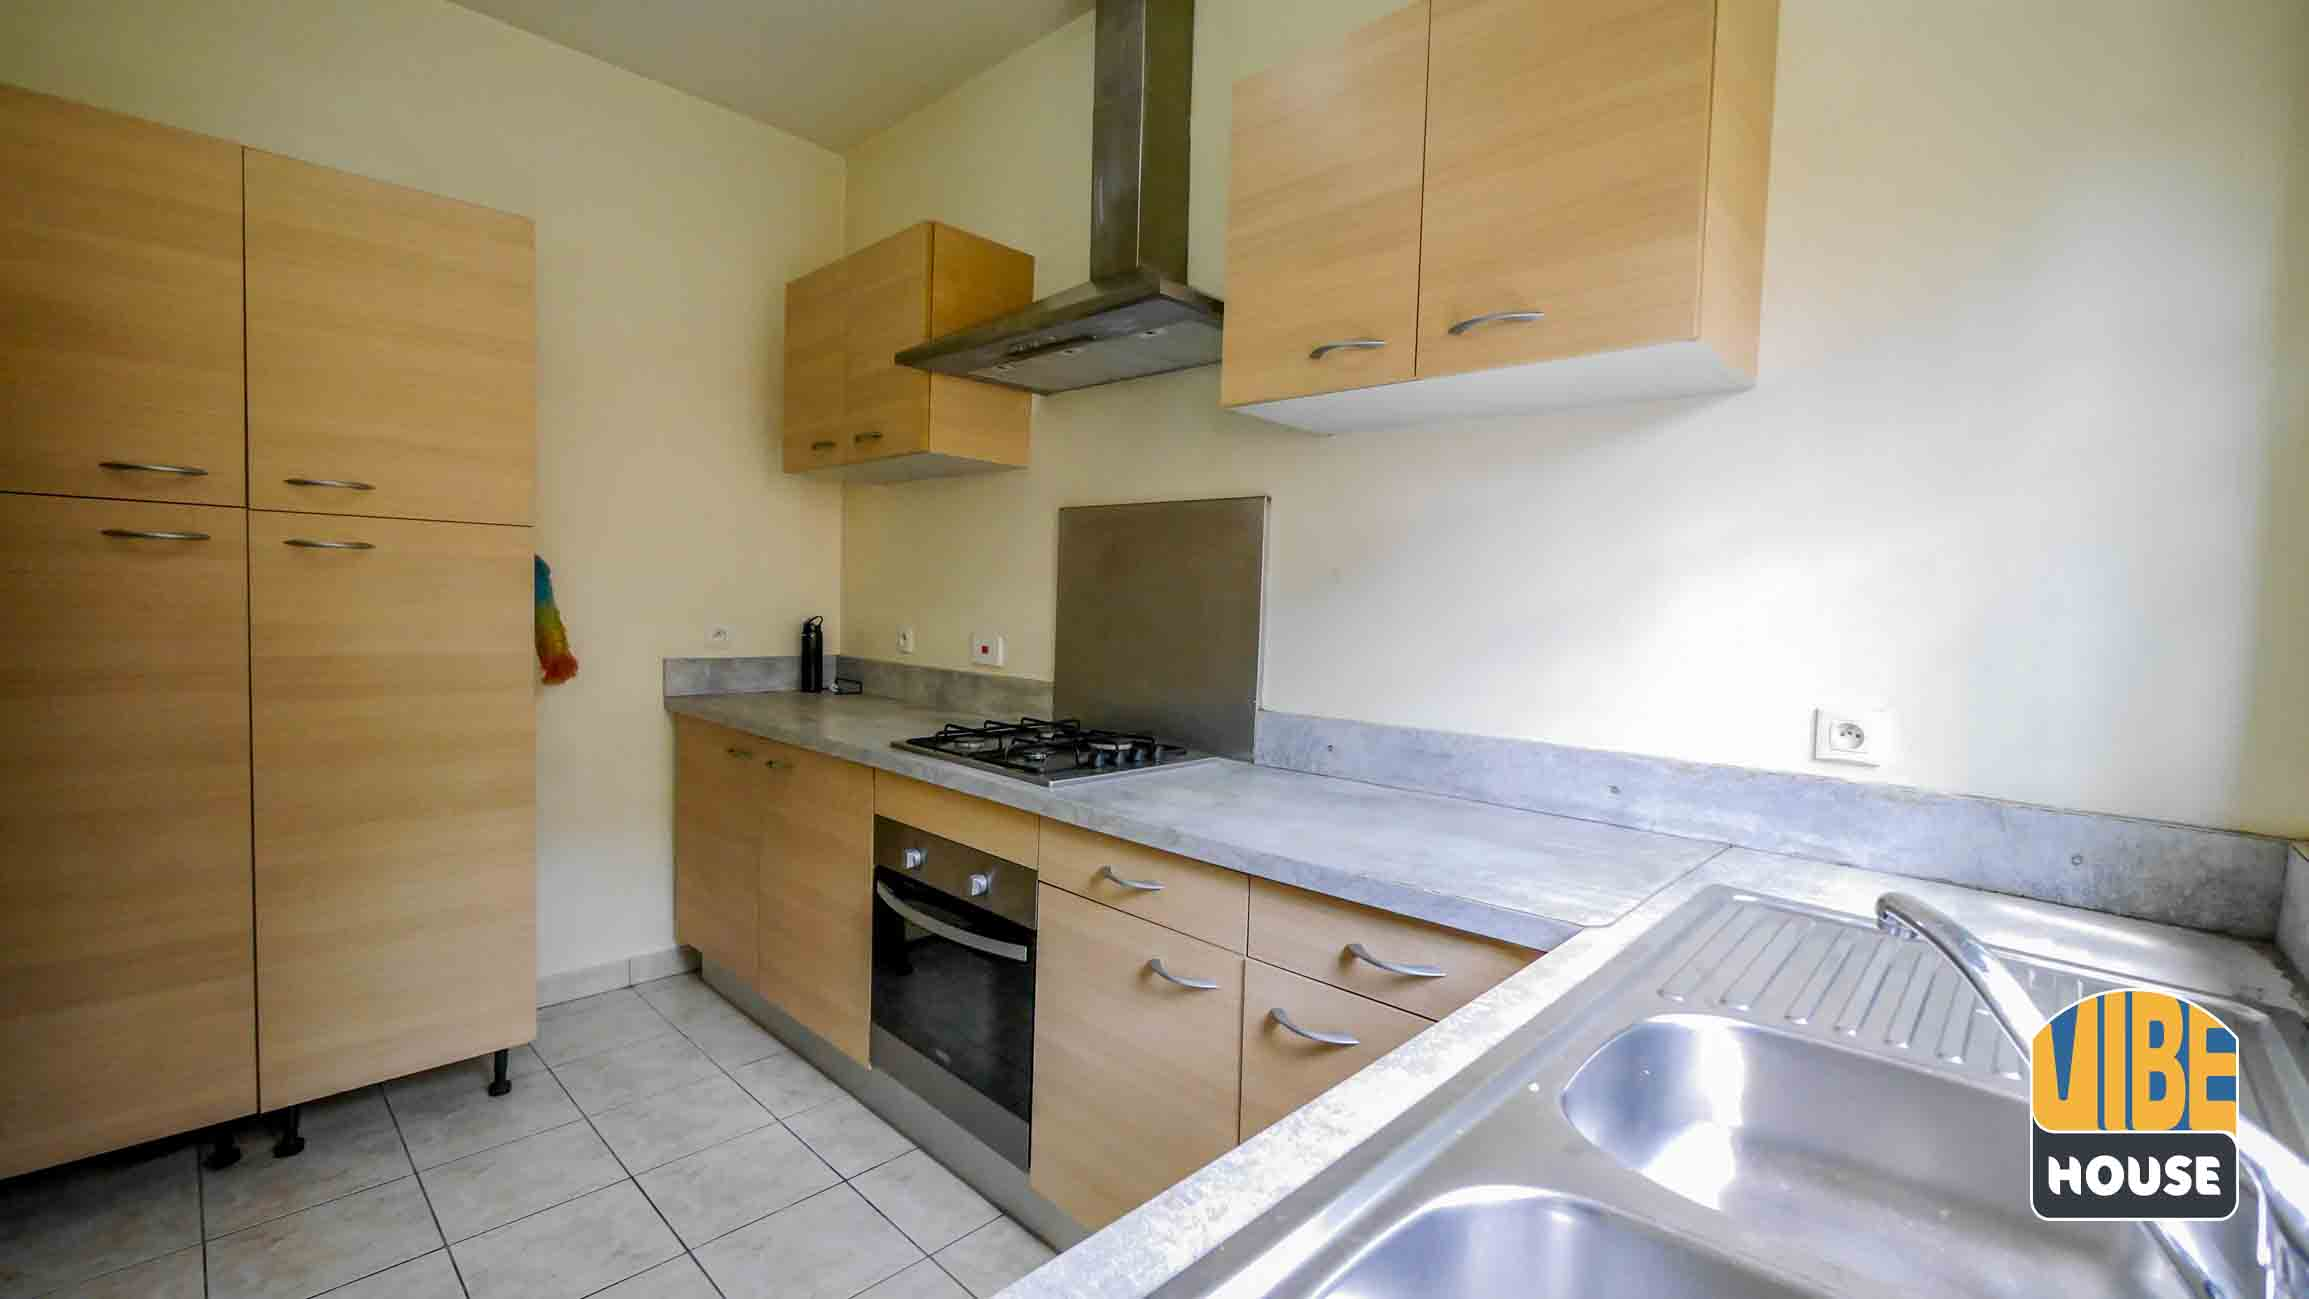 Modern Kitchen in house for rent with pool in Kibagabaga, Kigali